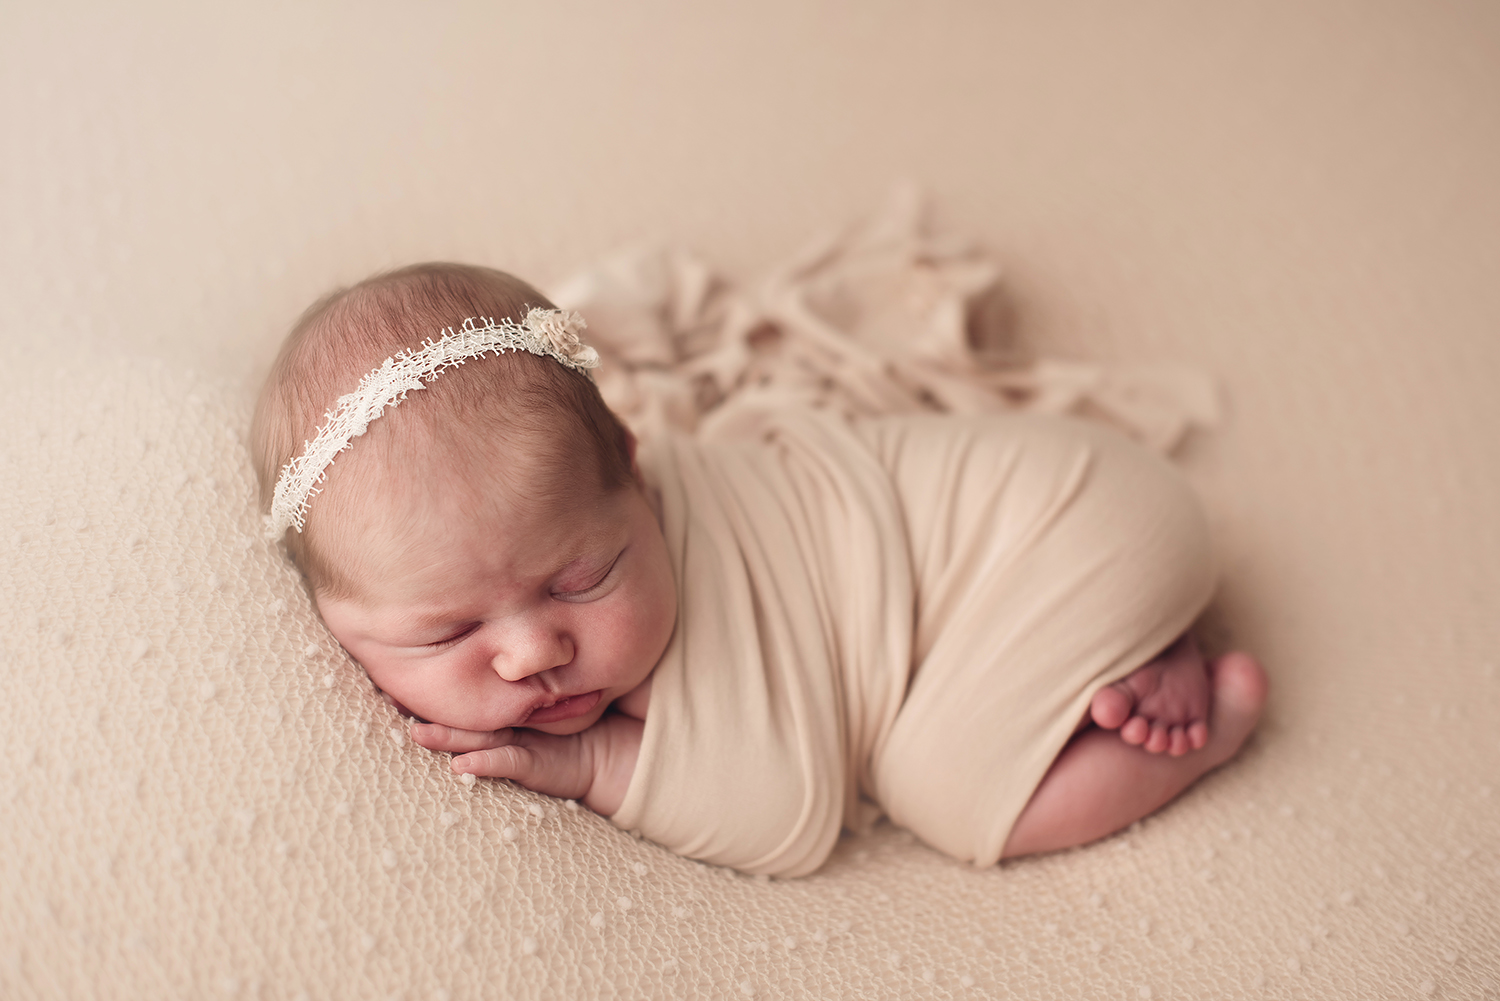 columbus-ohio-newborn-photography-studio.jpg